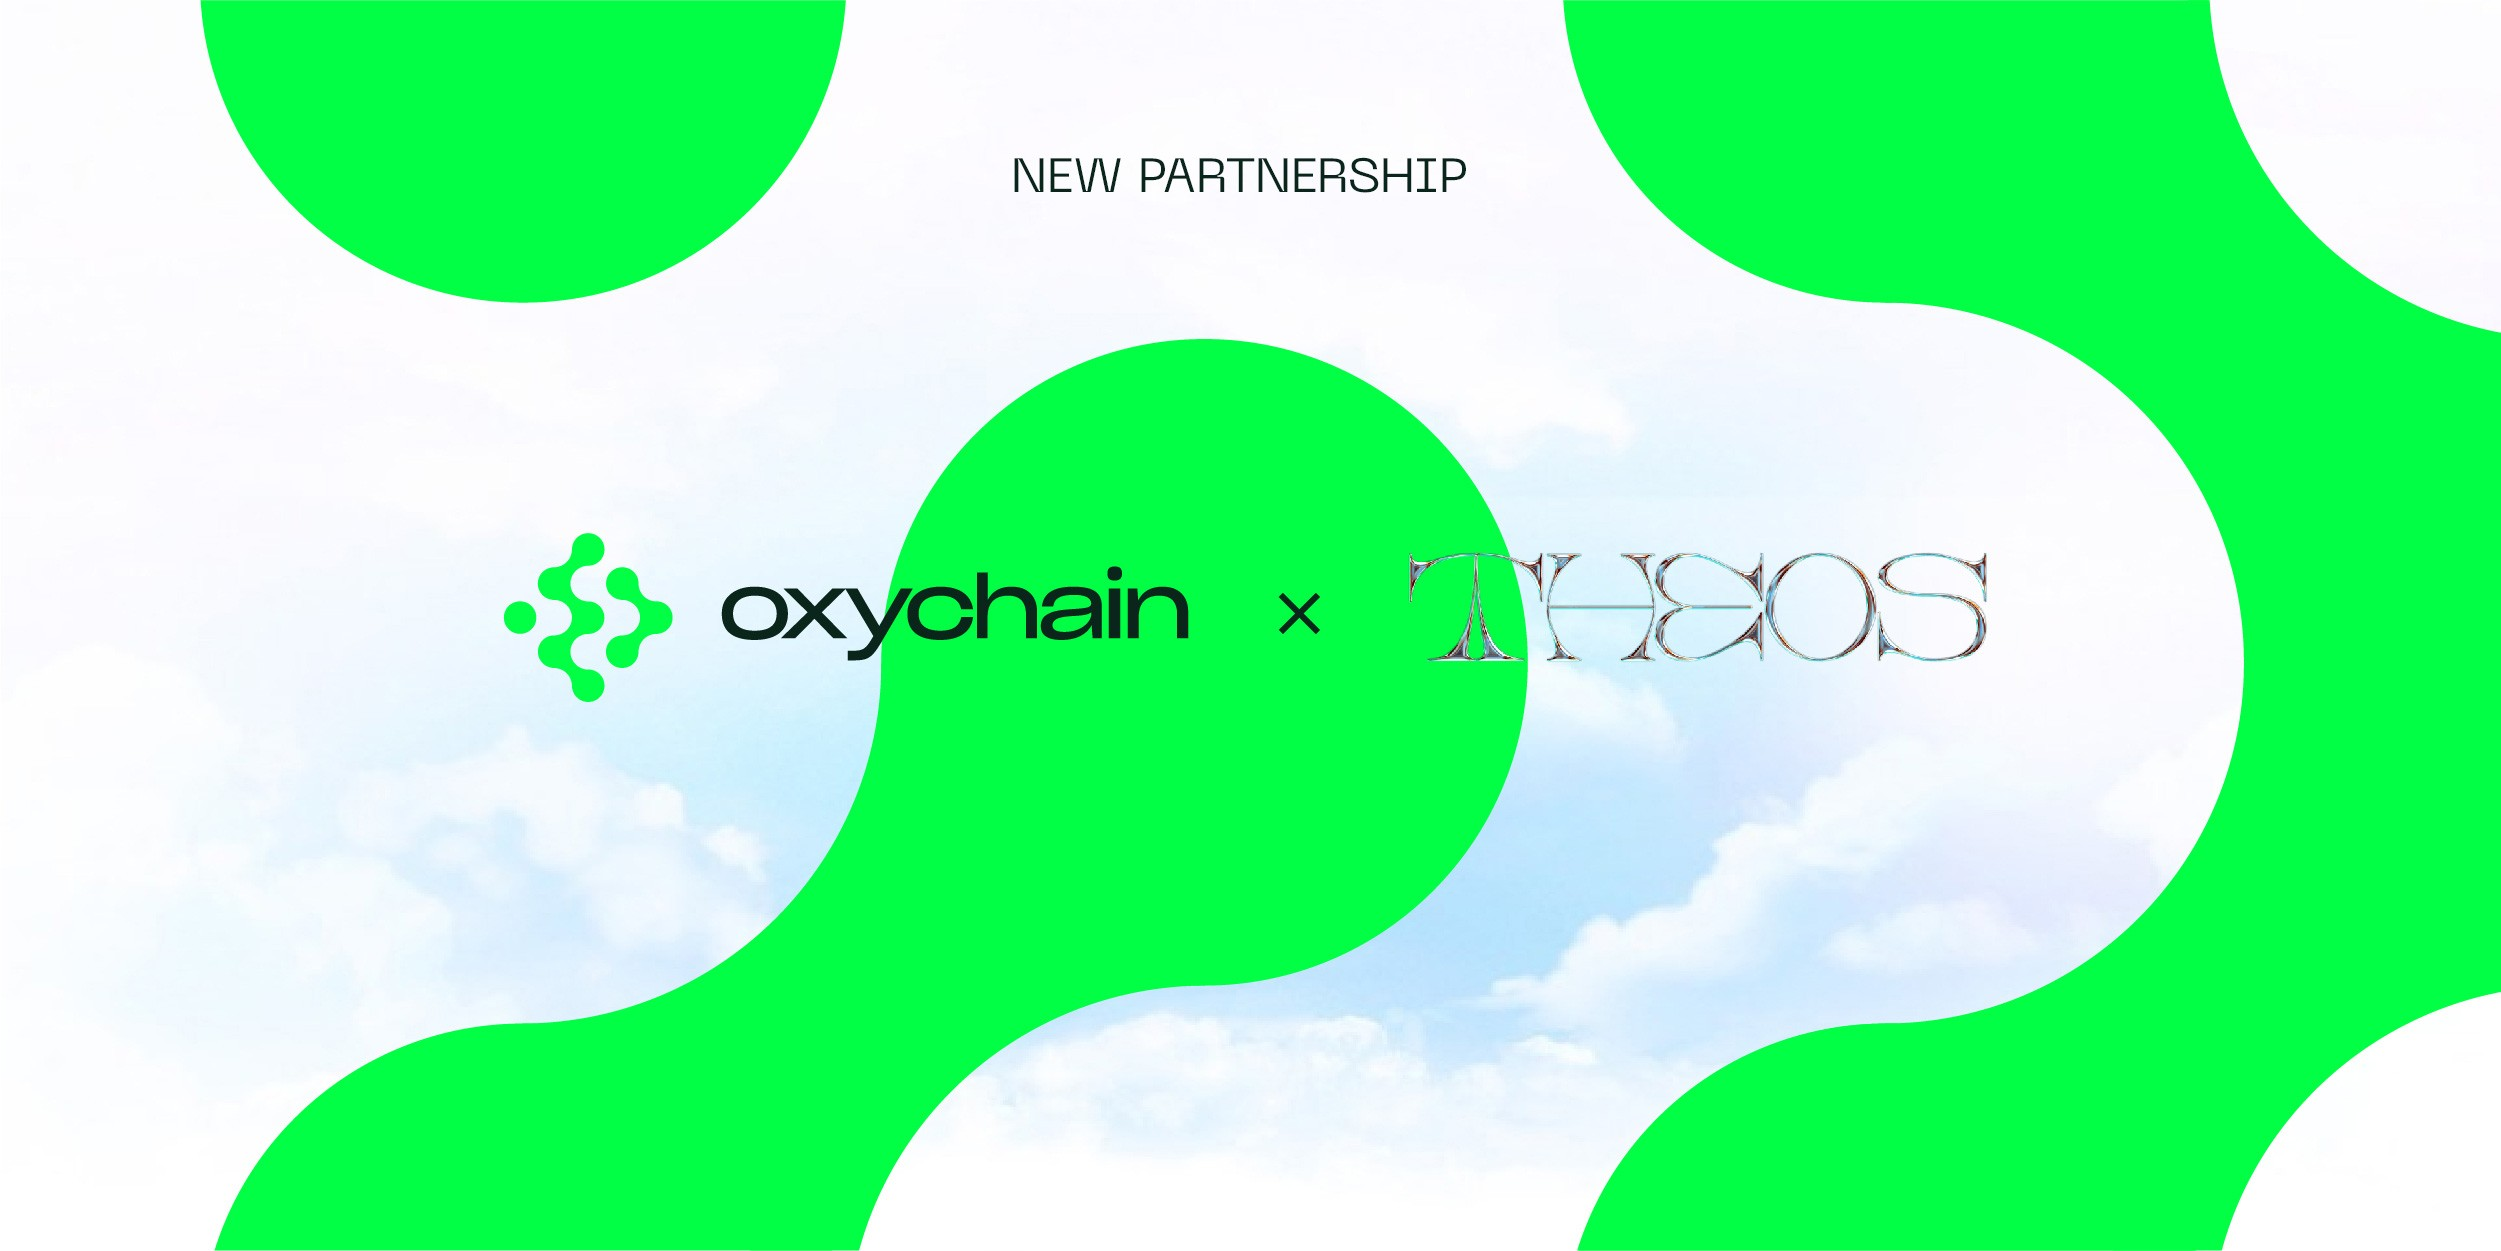 Oxychain forms a partnership with THEOS